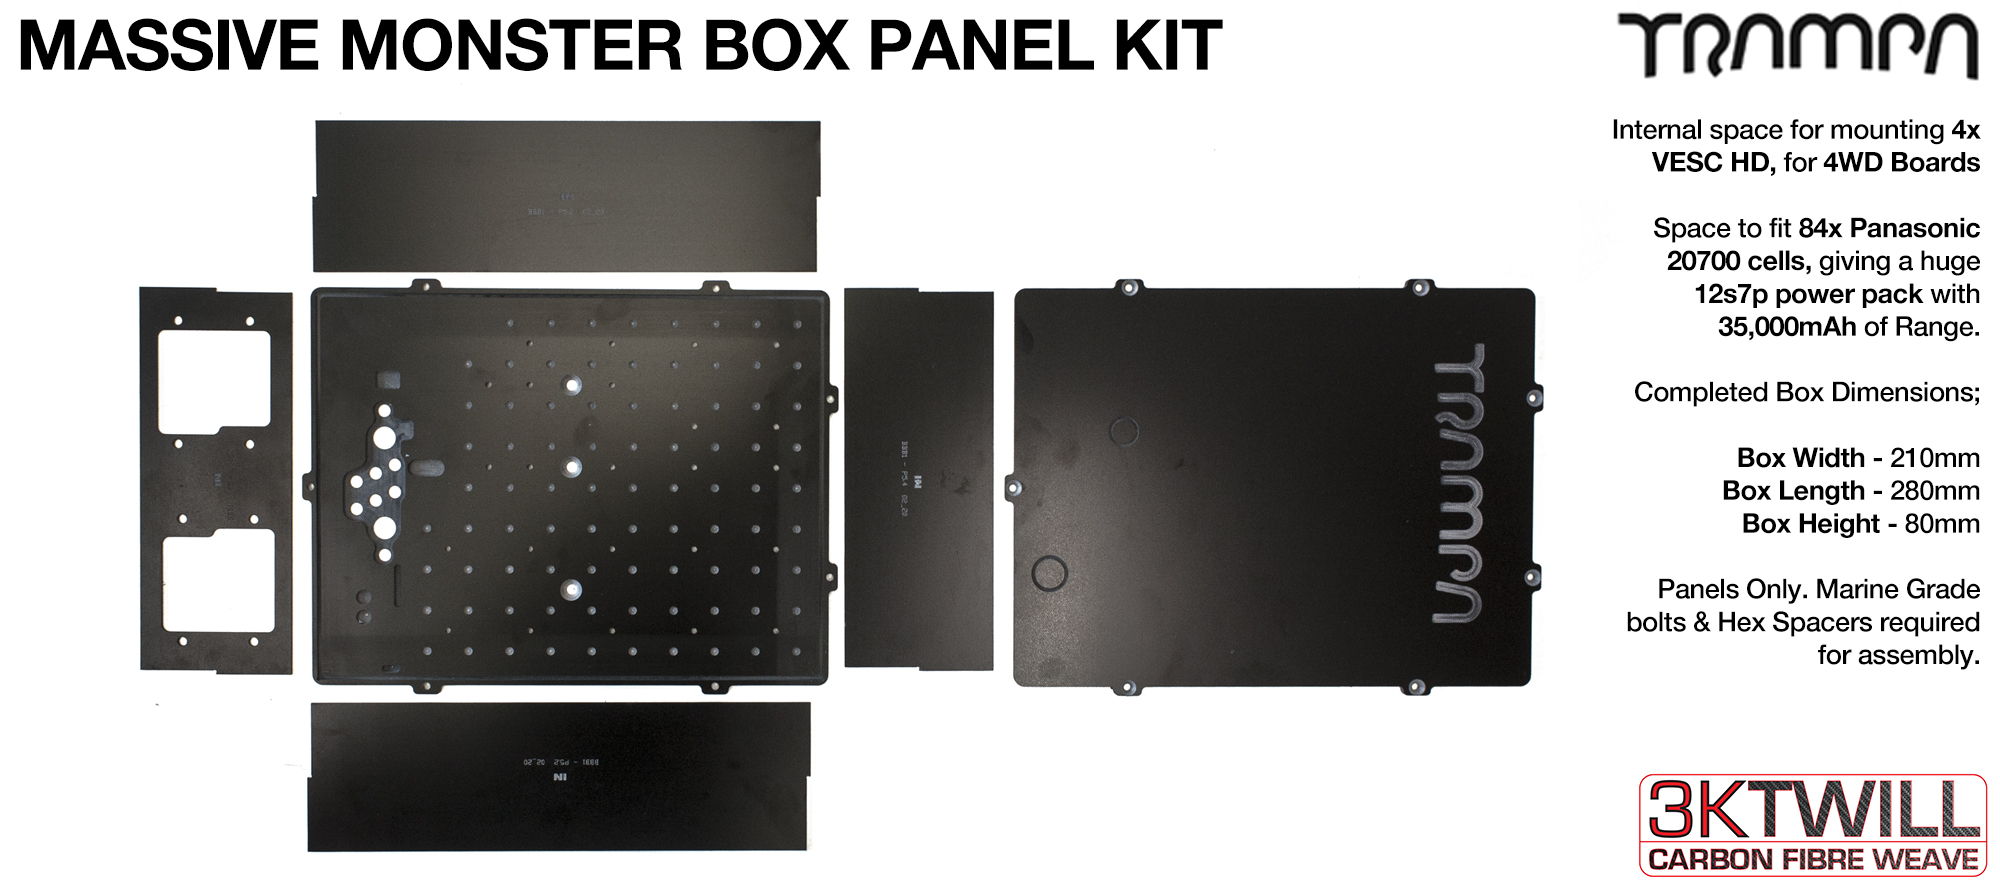 2WD MASSIVE MONSTER Box 35A BATTERY PACK Complete Box Glass Fiber Panel Kit with internal chamber for upto 4x VESC HD